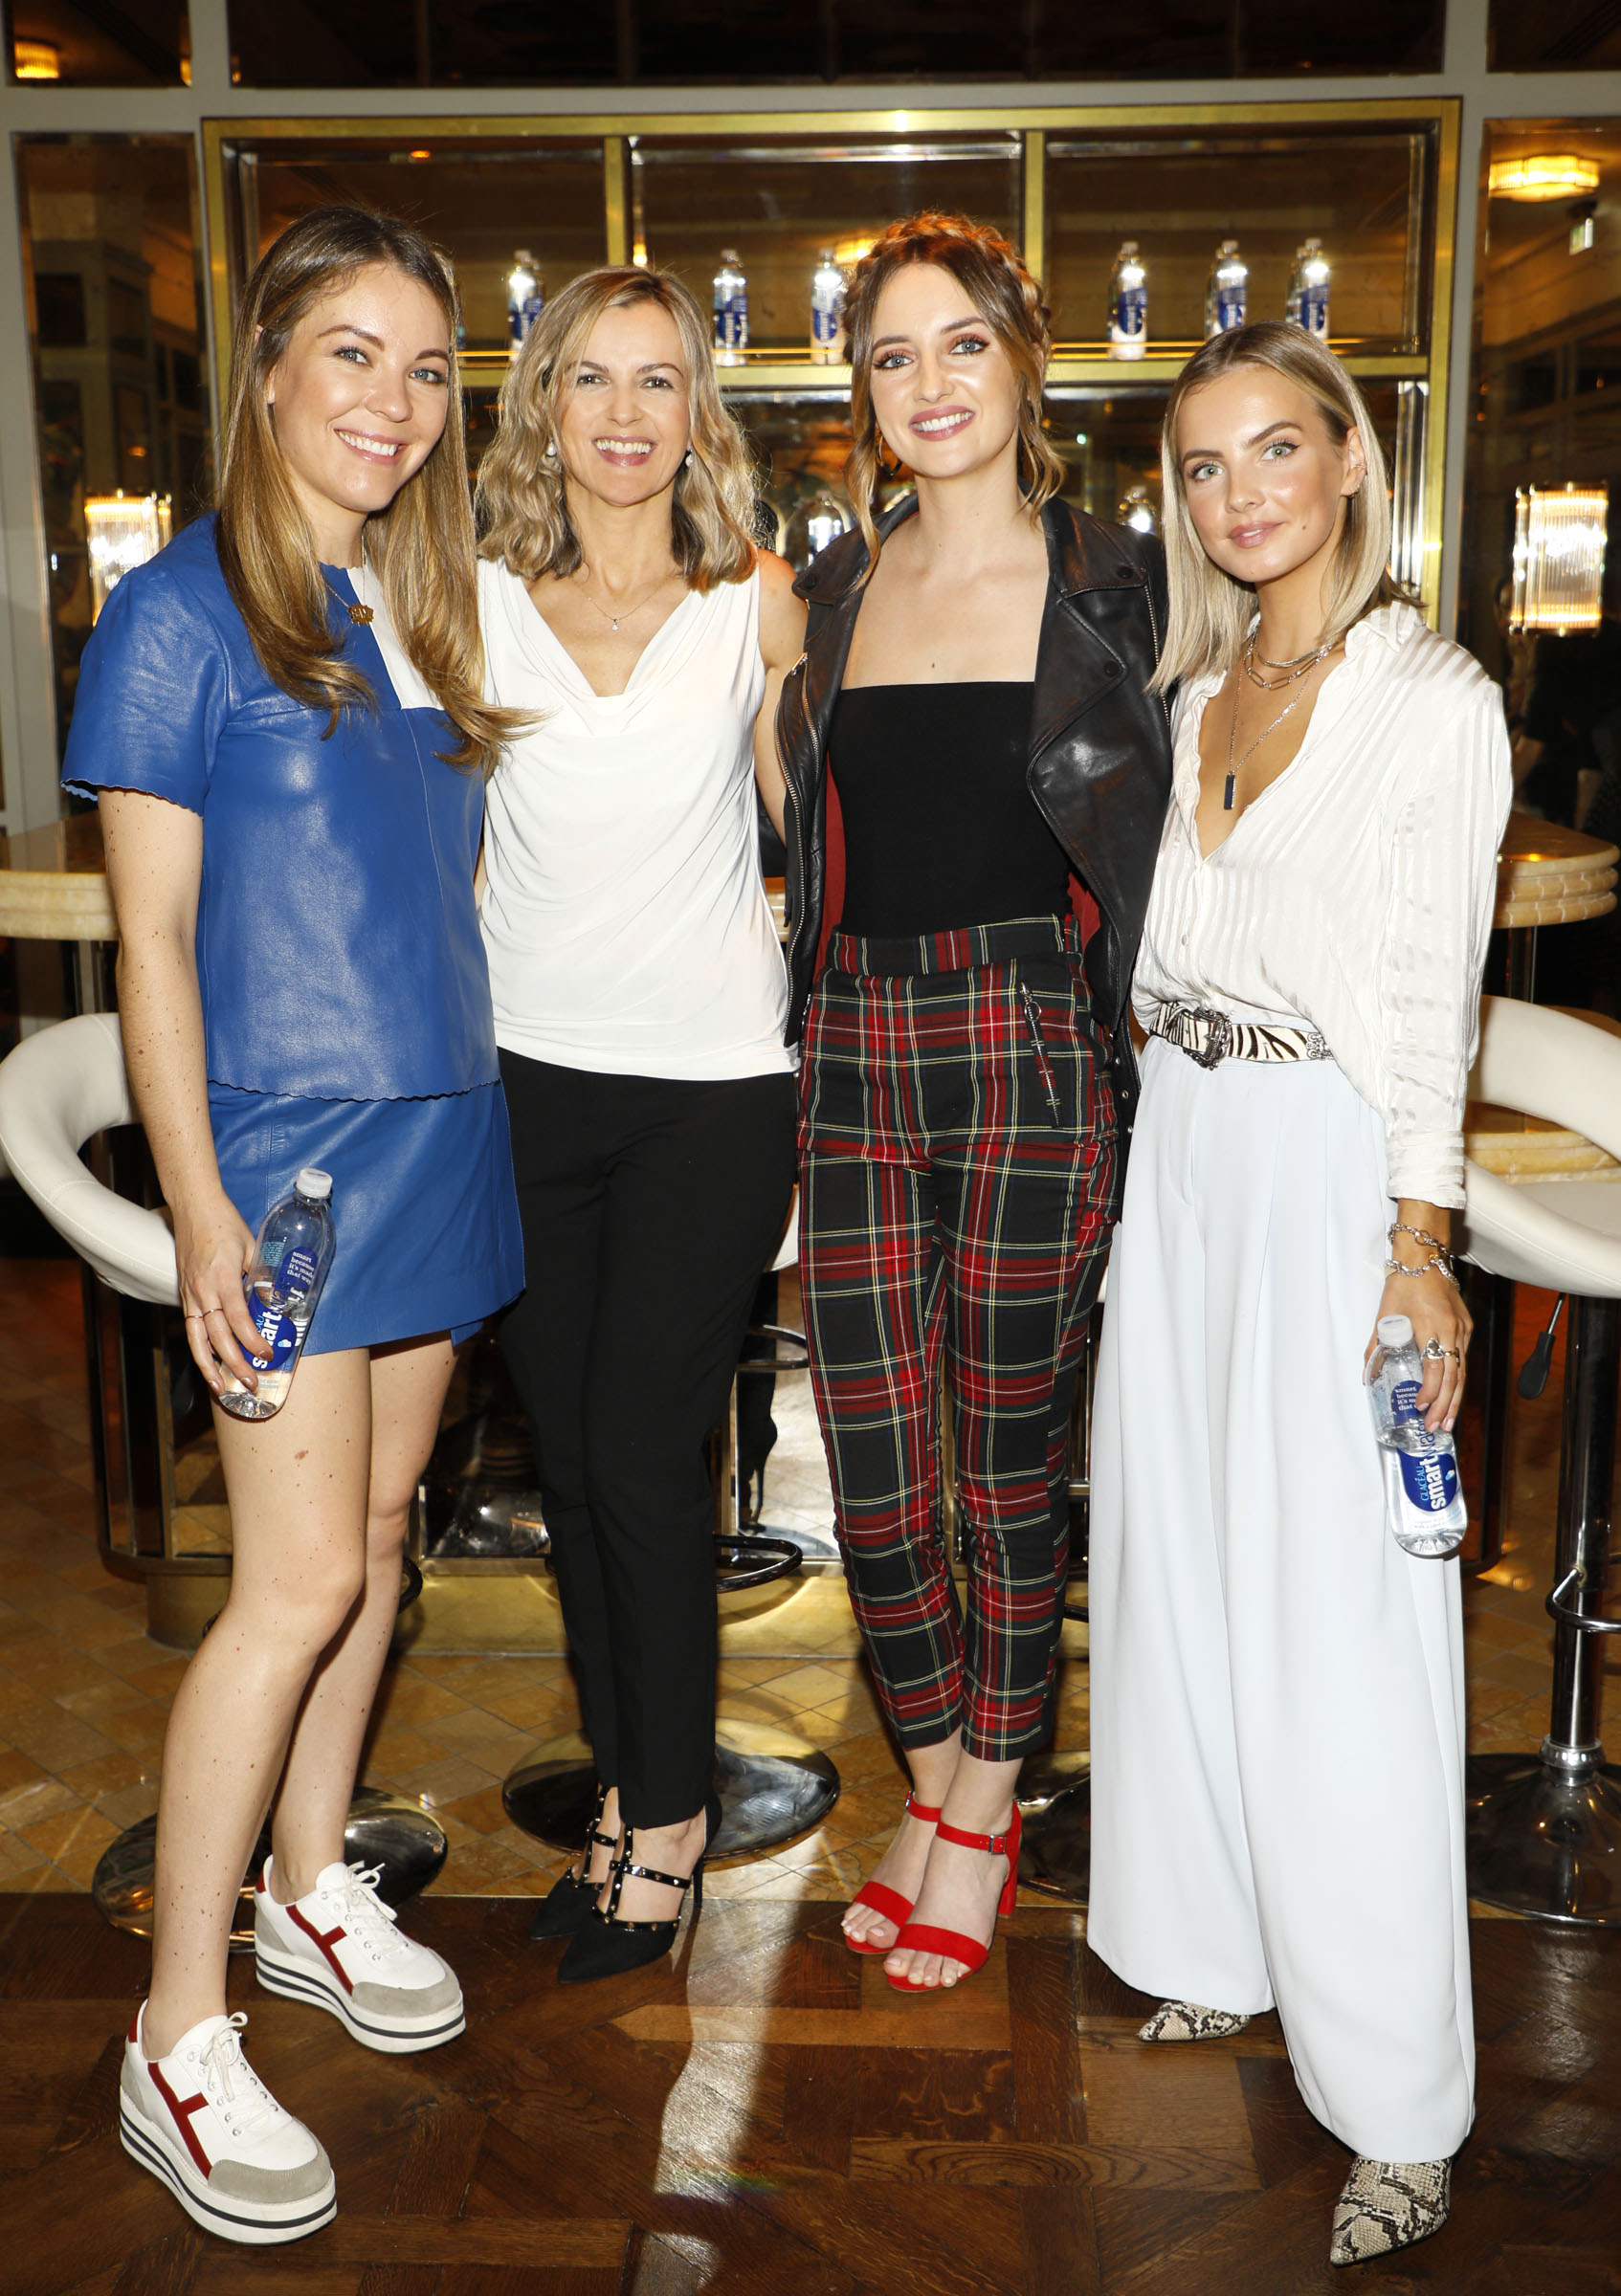 Emma Manley, Elaine Ross, Caroline Foran and Joanna Cooper at the launch of Smartwater which was held at the Ivy .photo Kieran Harnettno repro fee